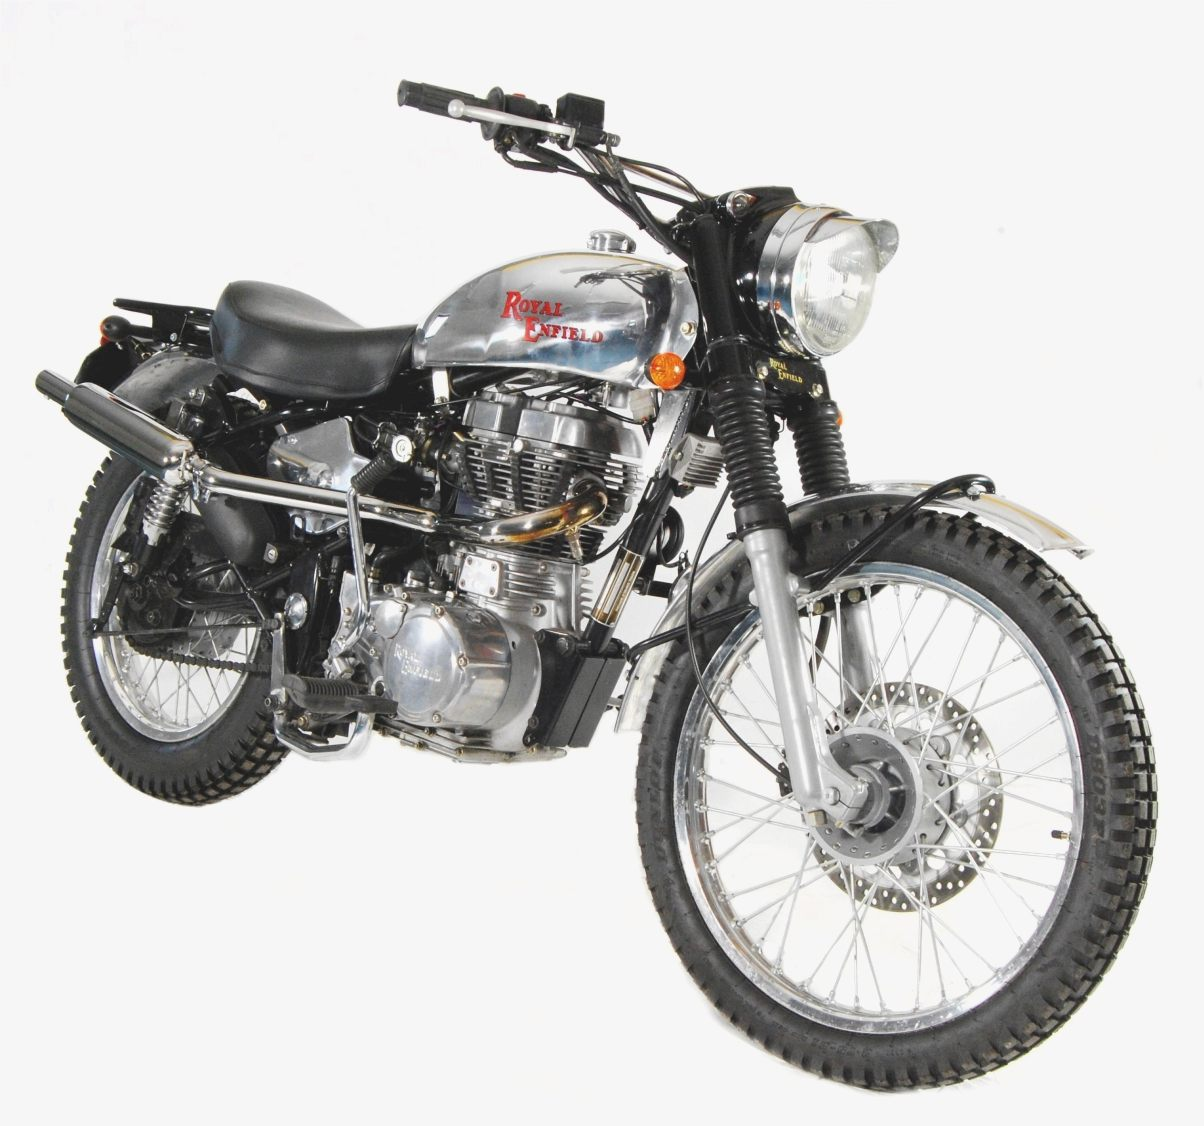 Royal Enfield Bullet 500 Trial Trail 2005 images #173816